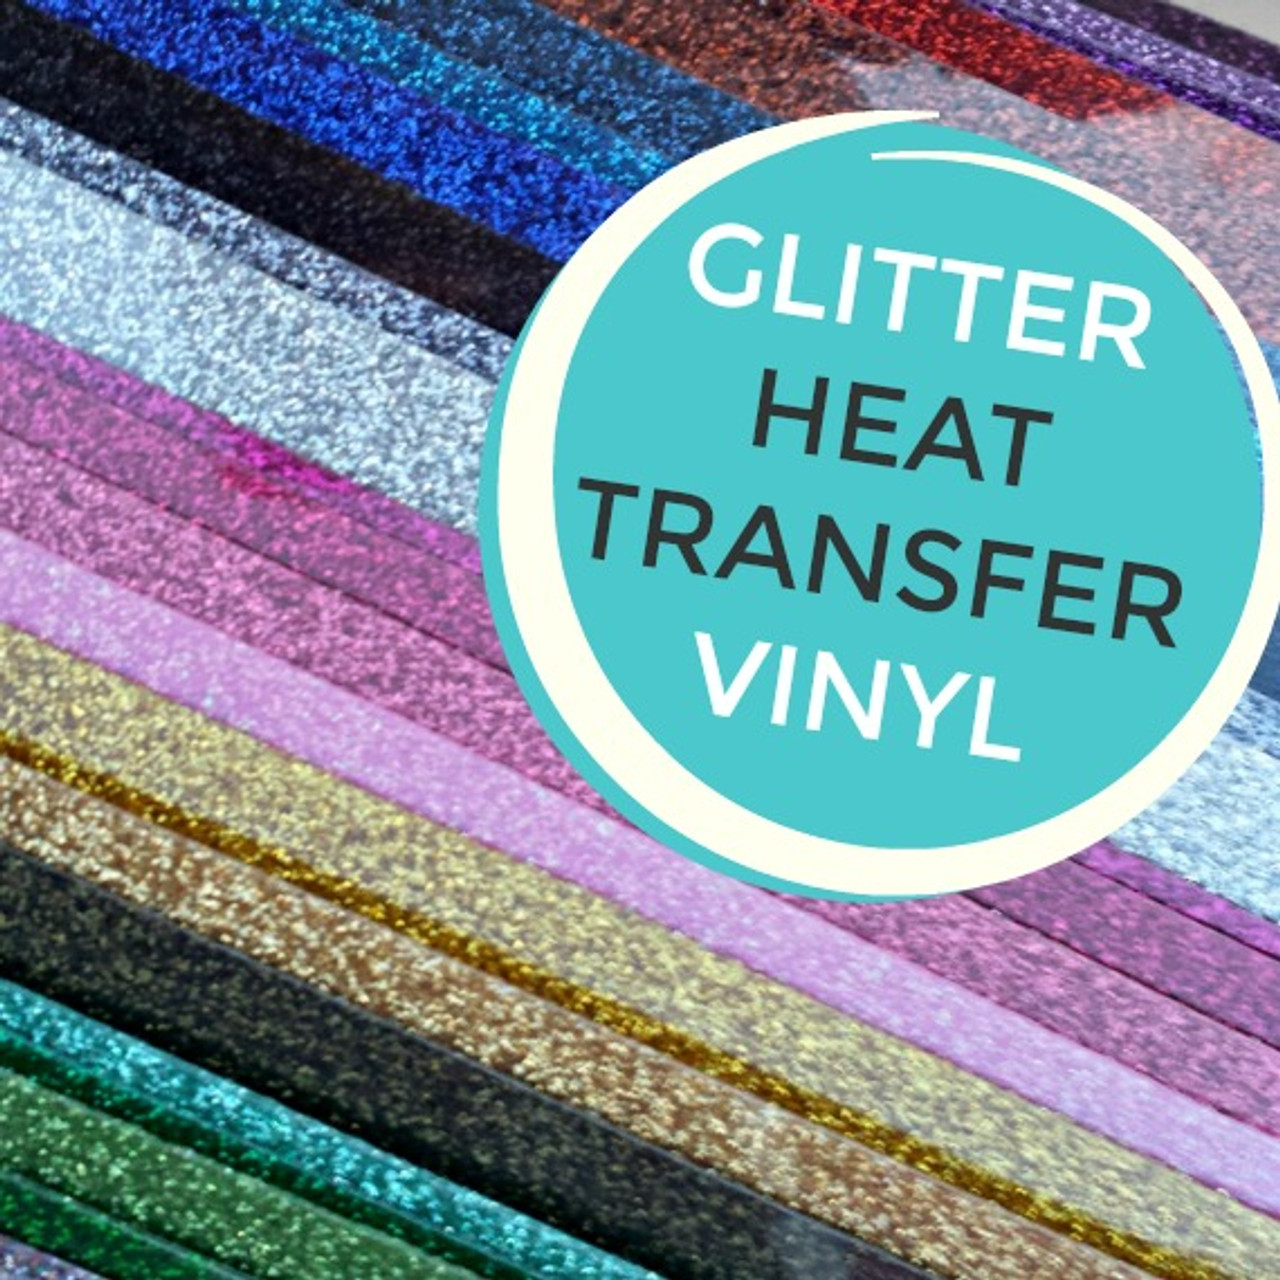 Siser Glitter Heat Transfer Vinyl My Vinyl Direct